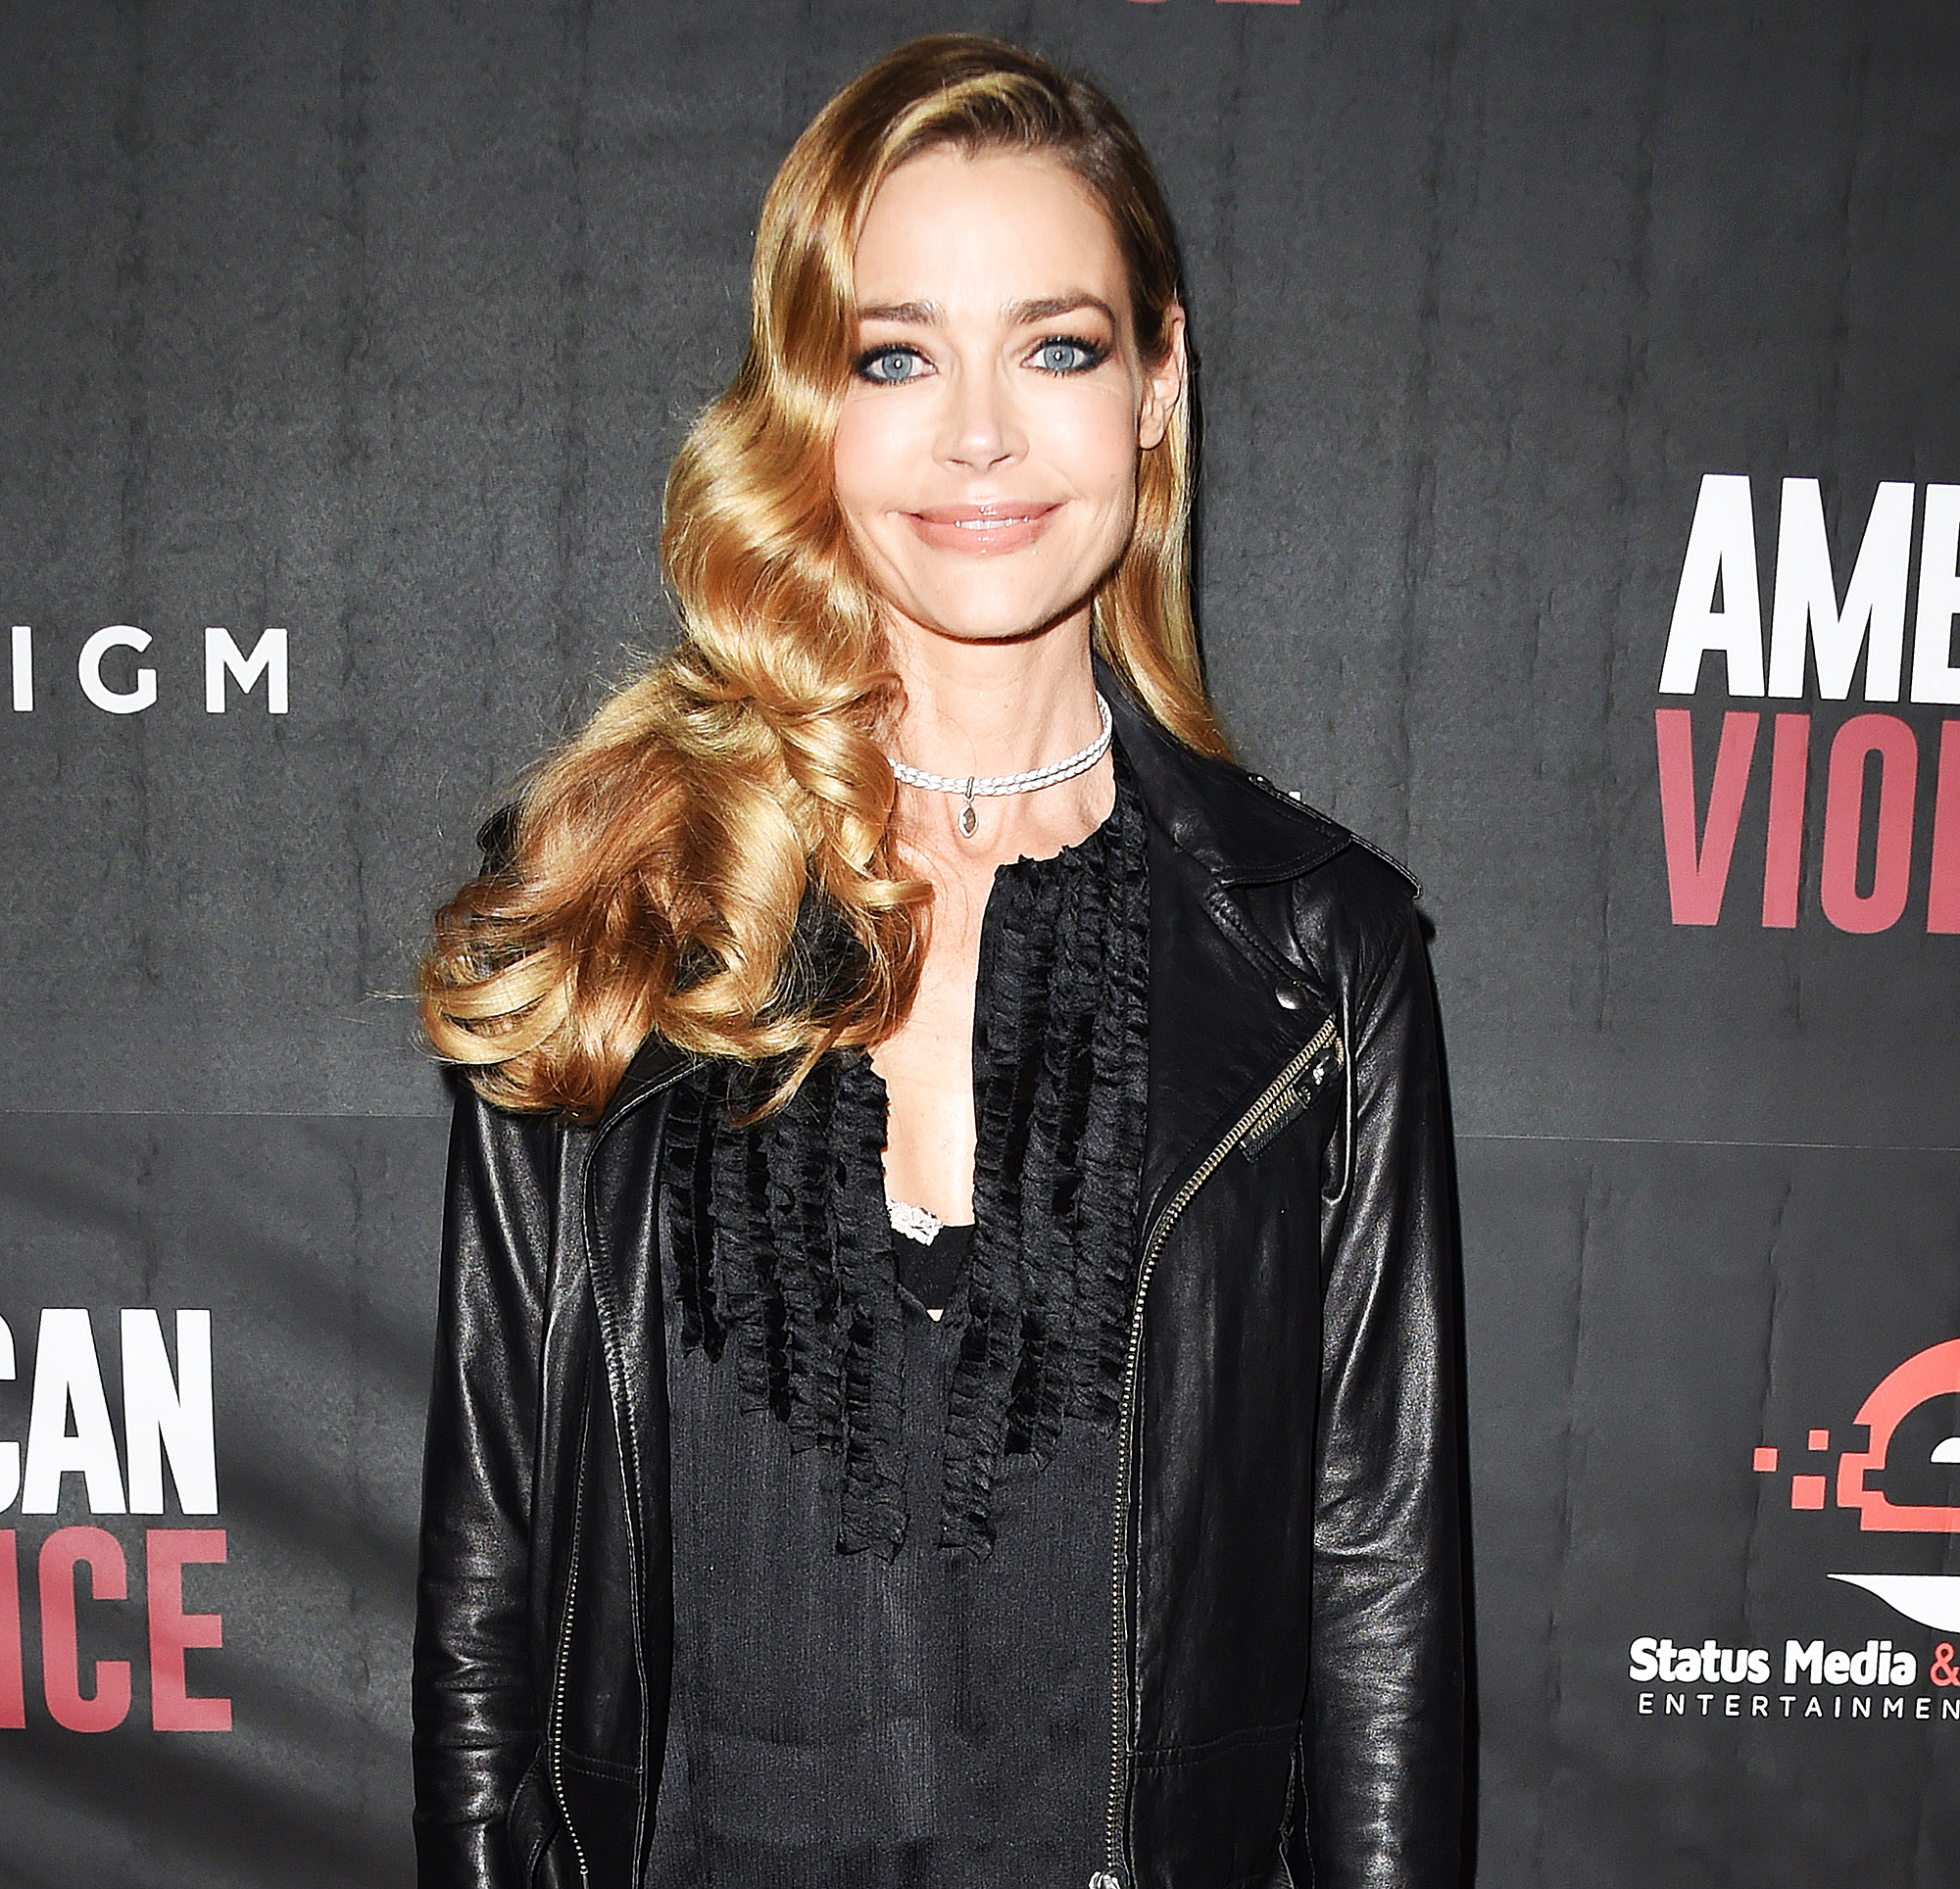 Denise Richards Confirms She Is Joining 'RHOBH': 'I Am So Excited'